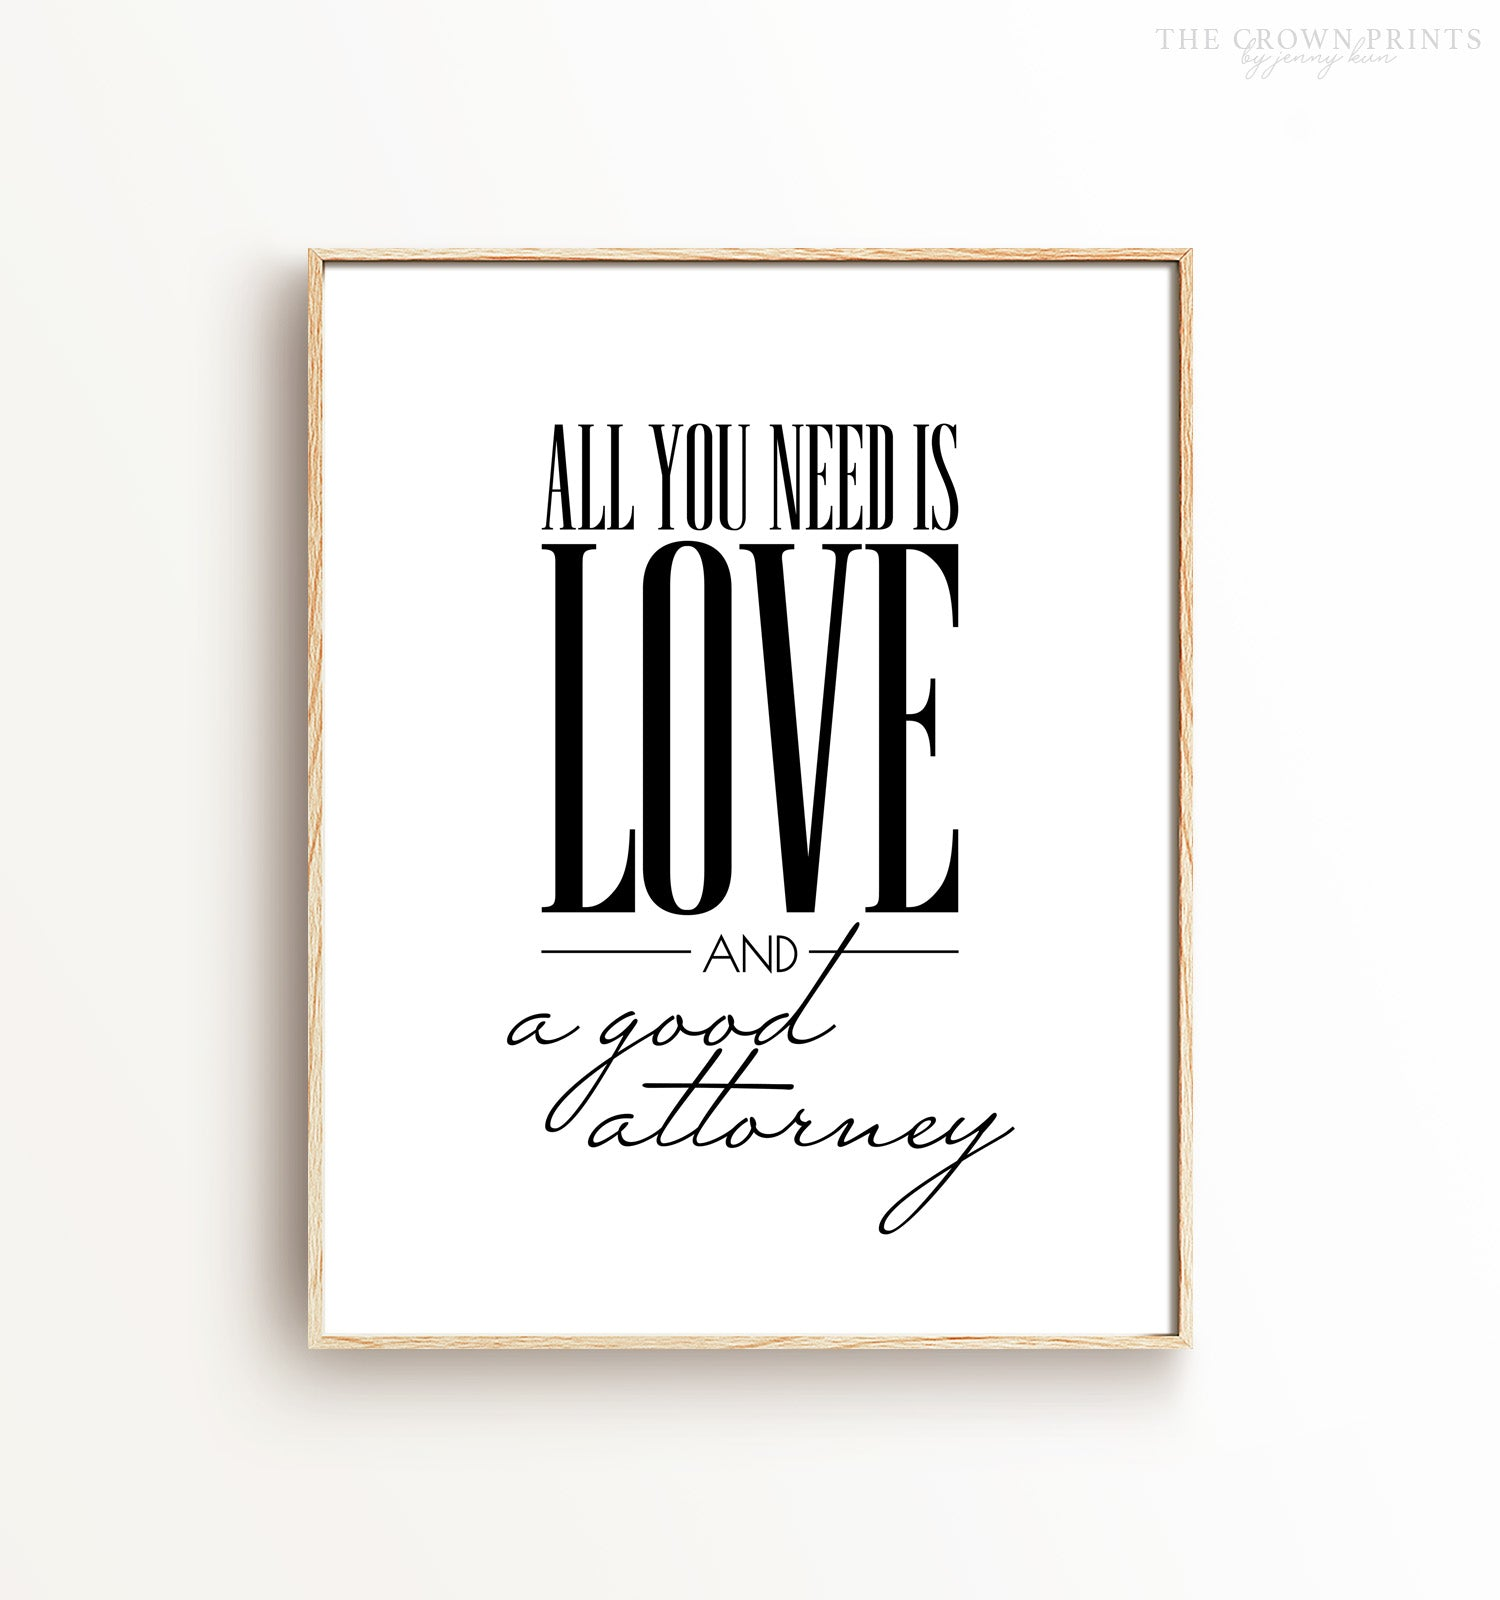 All you need is love and a good attorney - The Crown Prints